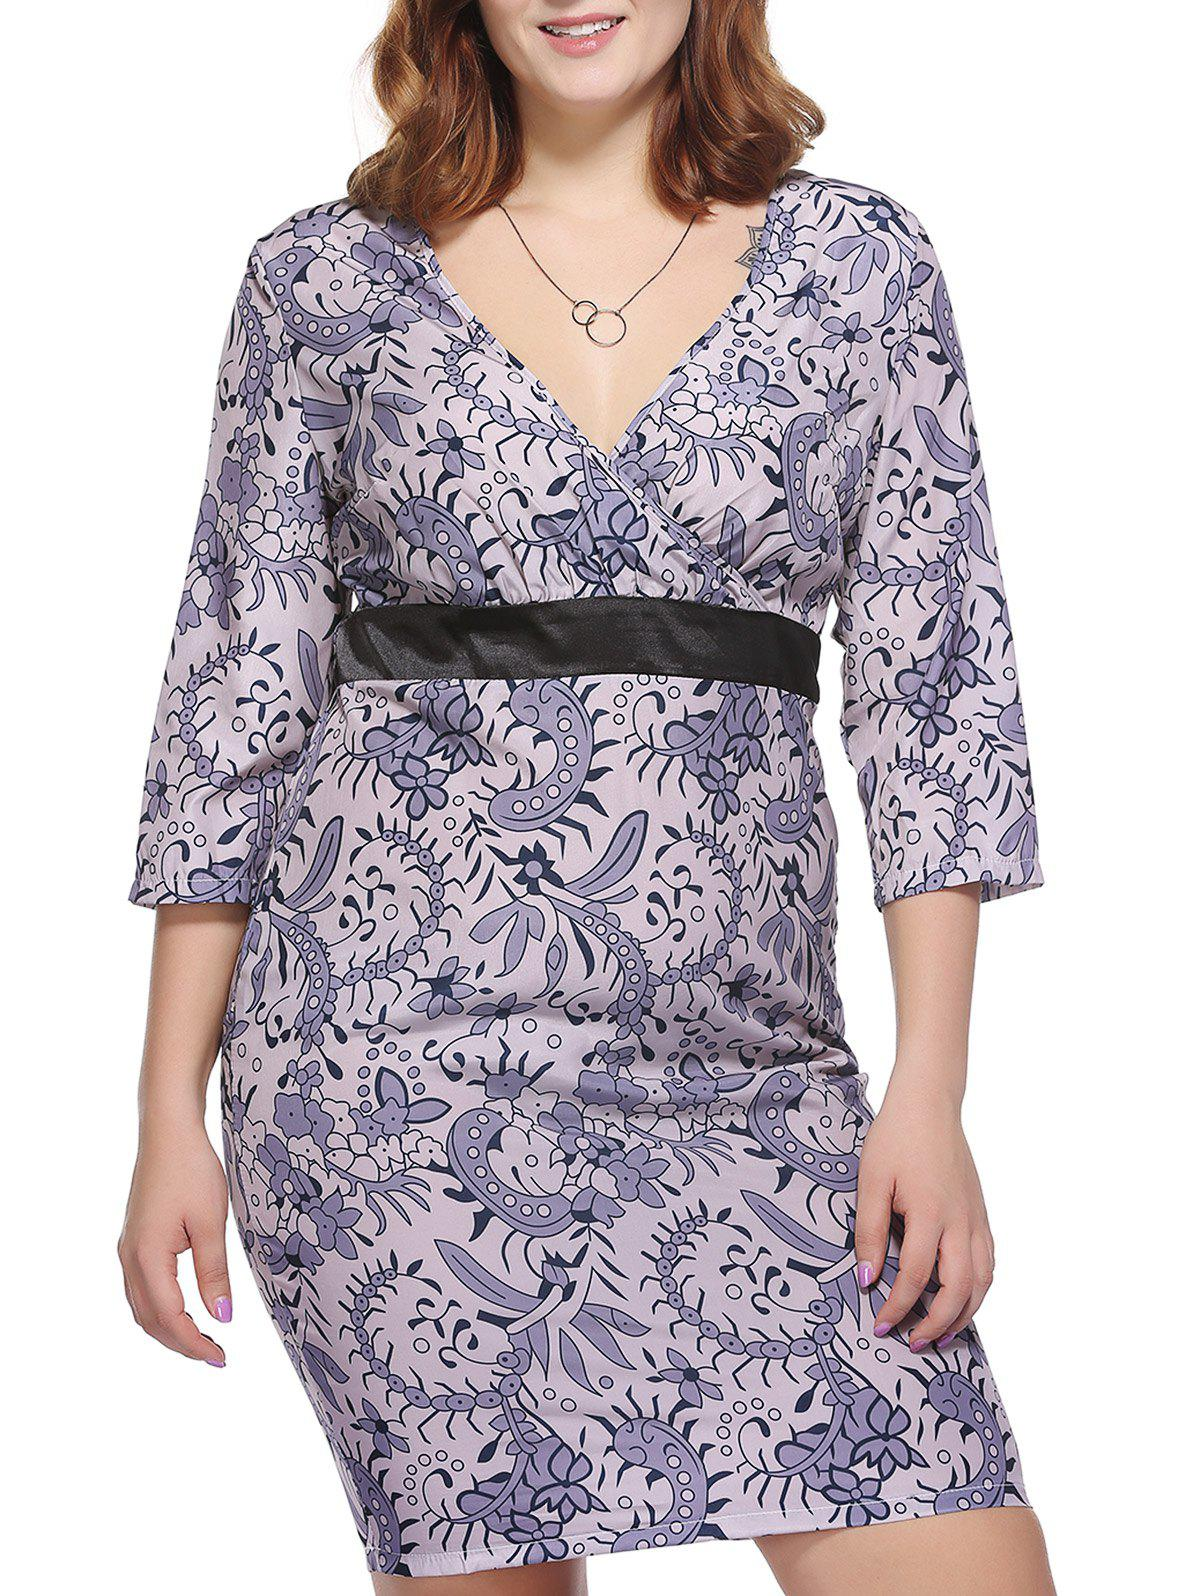 Alluring Plus Size Tiny Floral Print Plunging Neck Women's Sheath Dress